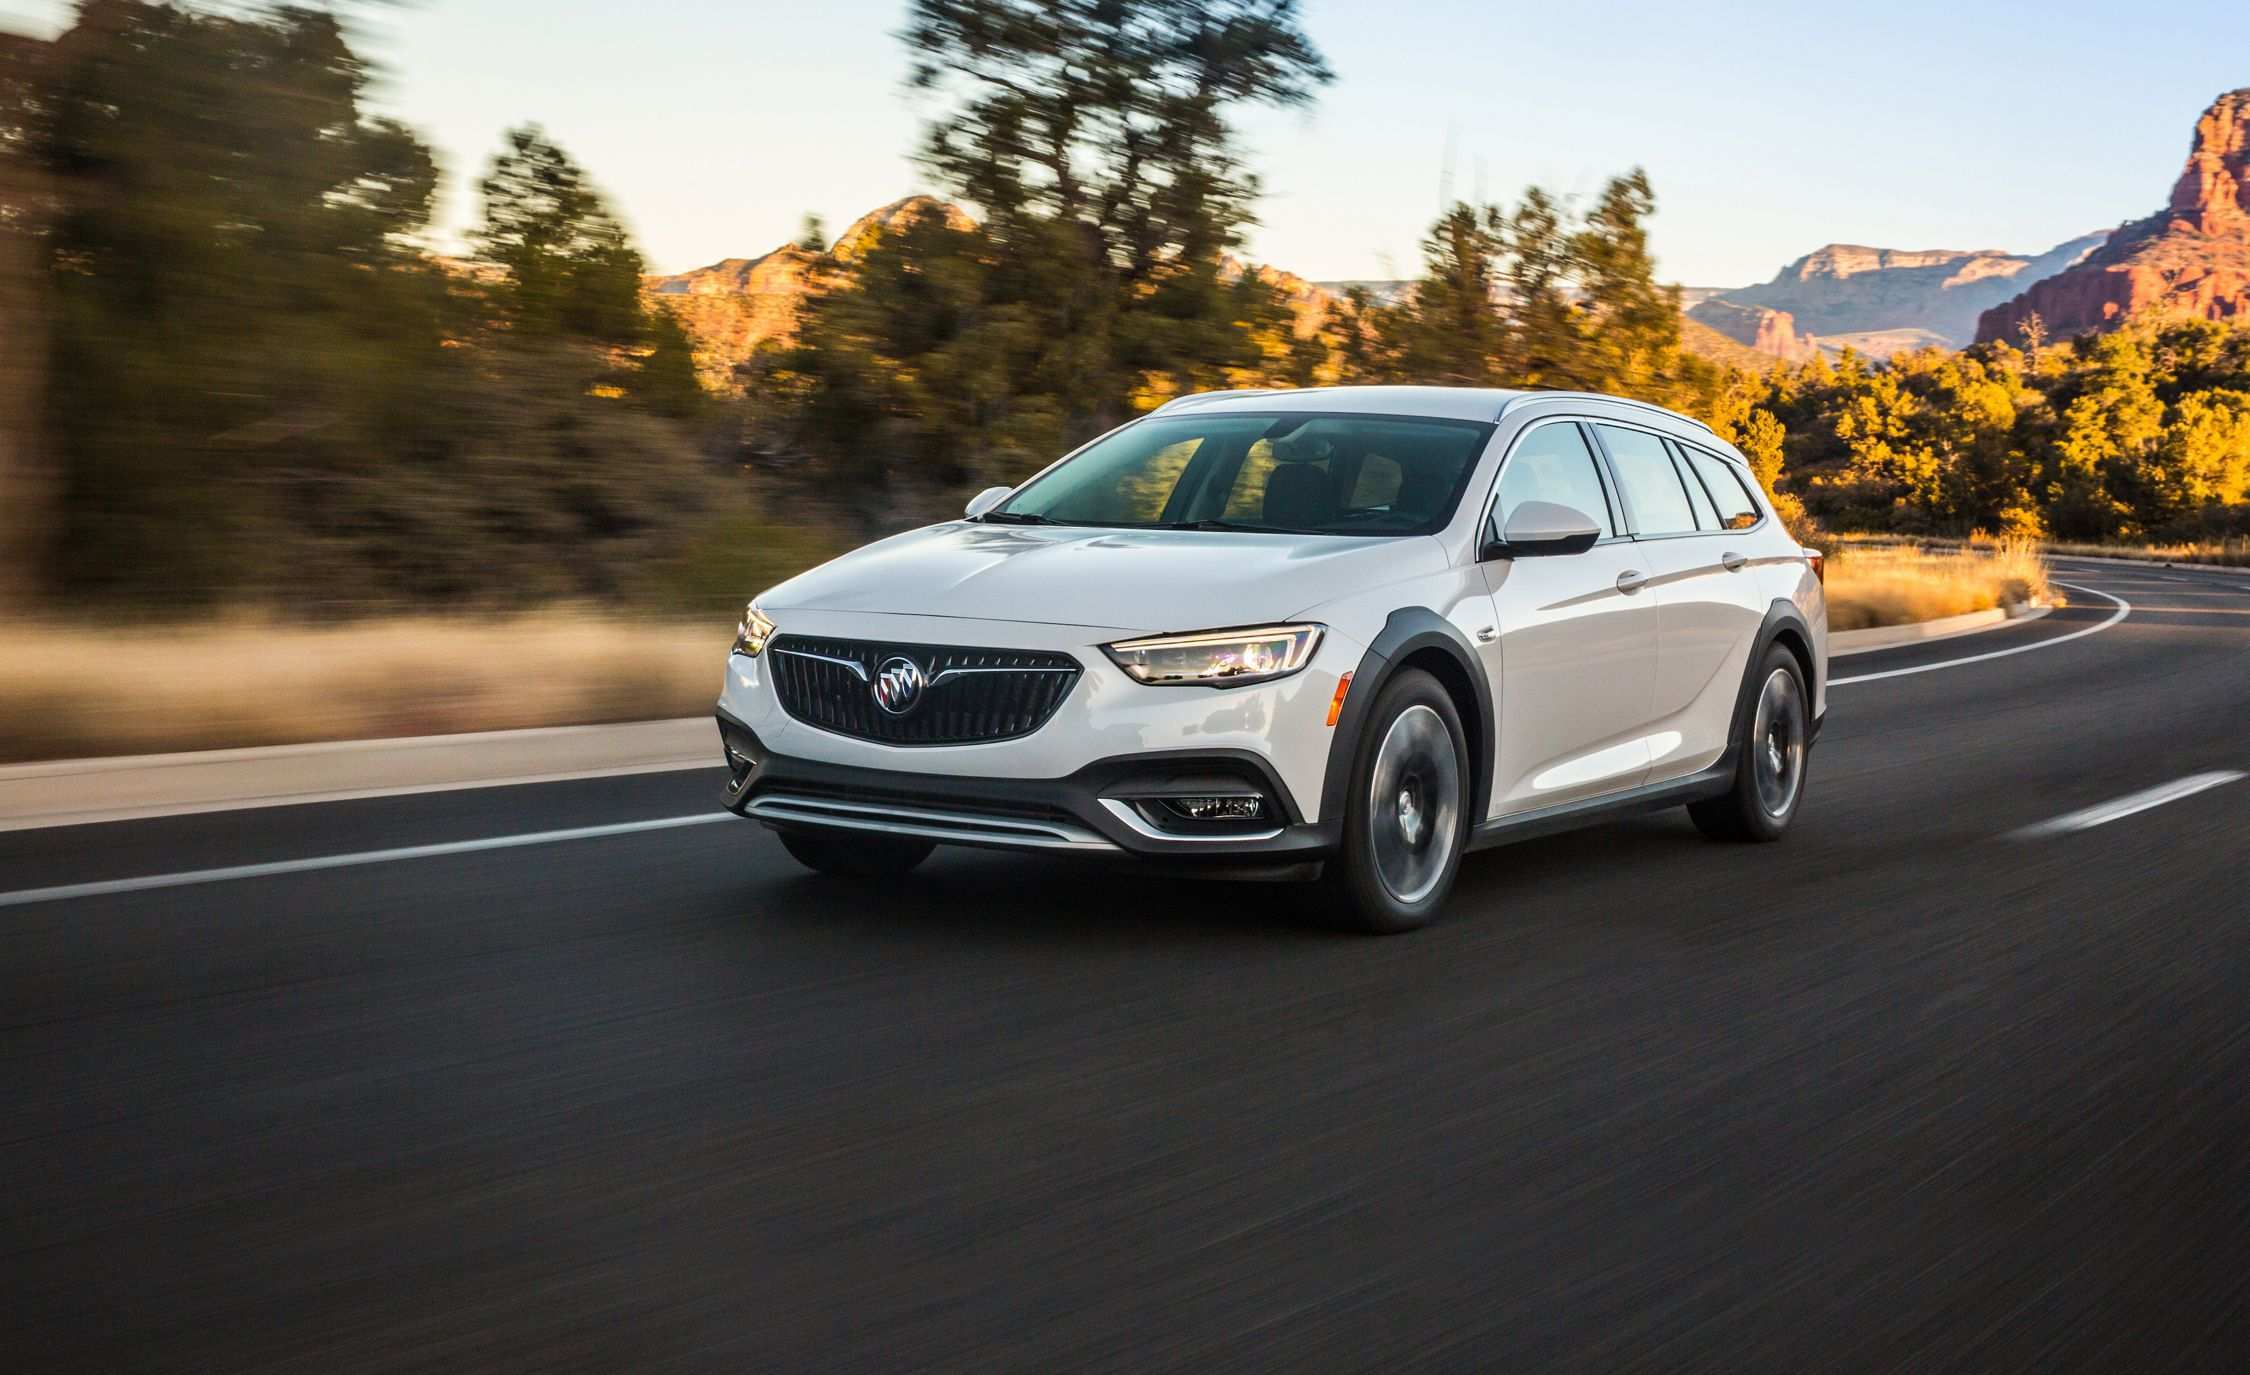 57 Concept of 2020 Buick Regal Station Wagon Prices with 2020 Buick Regal Station Wagon